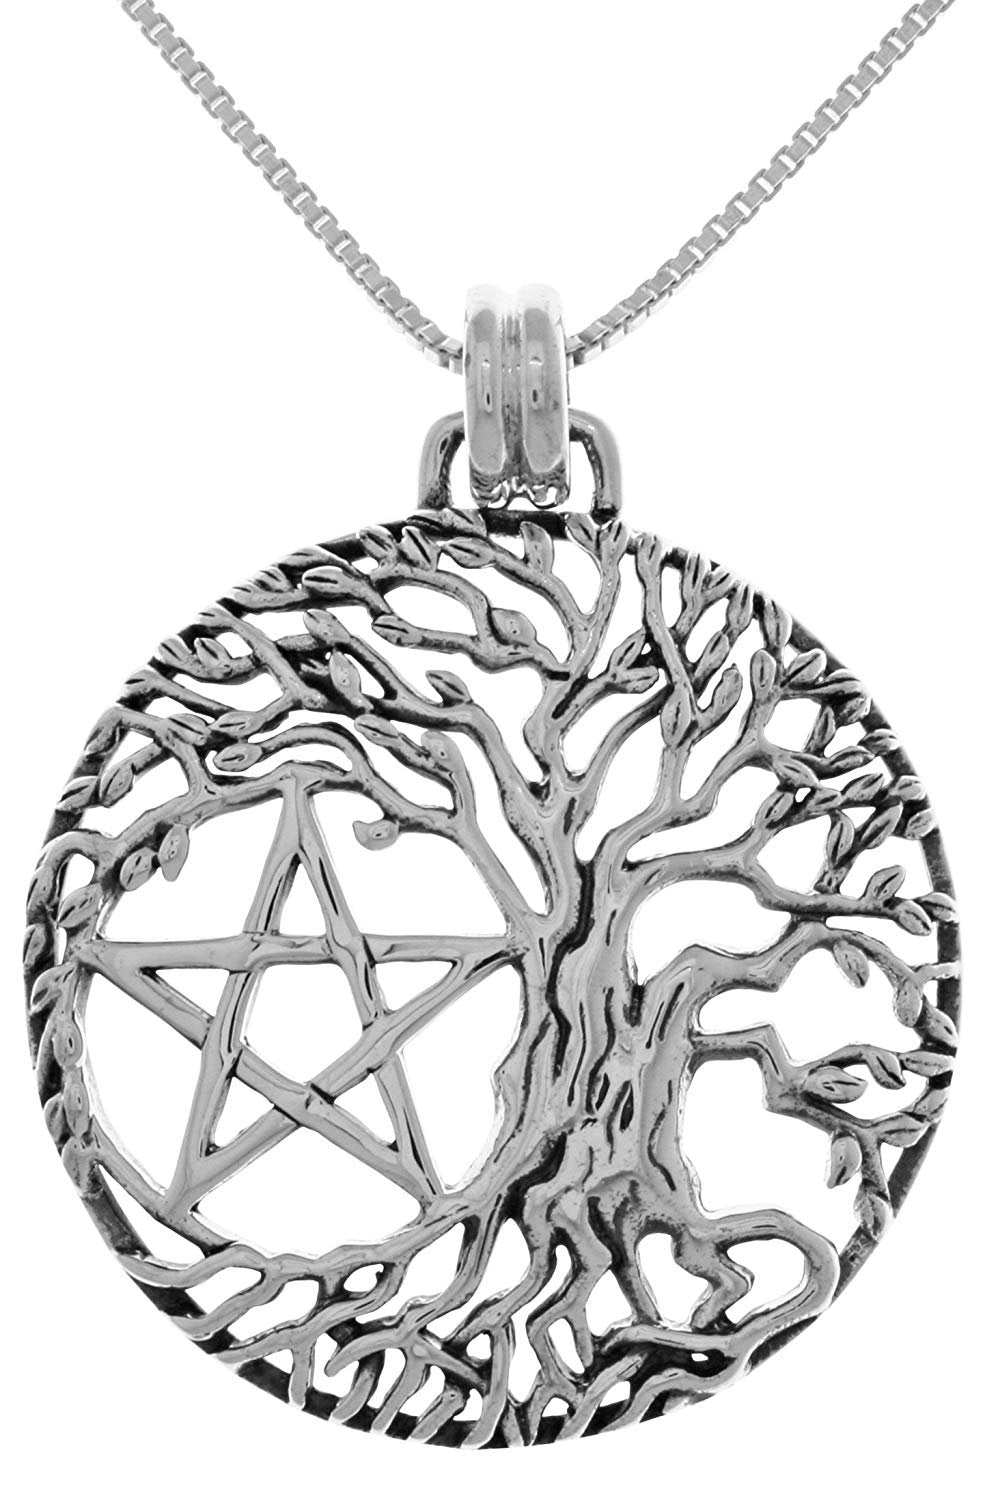 Jewelry Trends Pentacle Tree of Life Wiccan Sterling Silver Pendant Necklace 18""